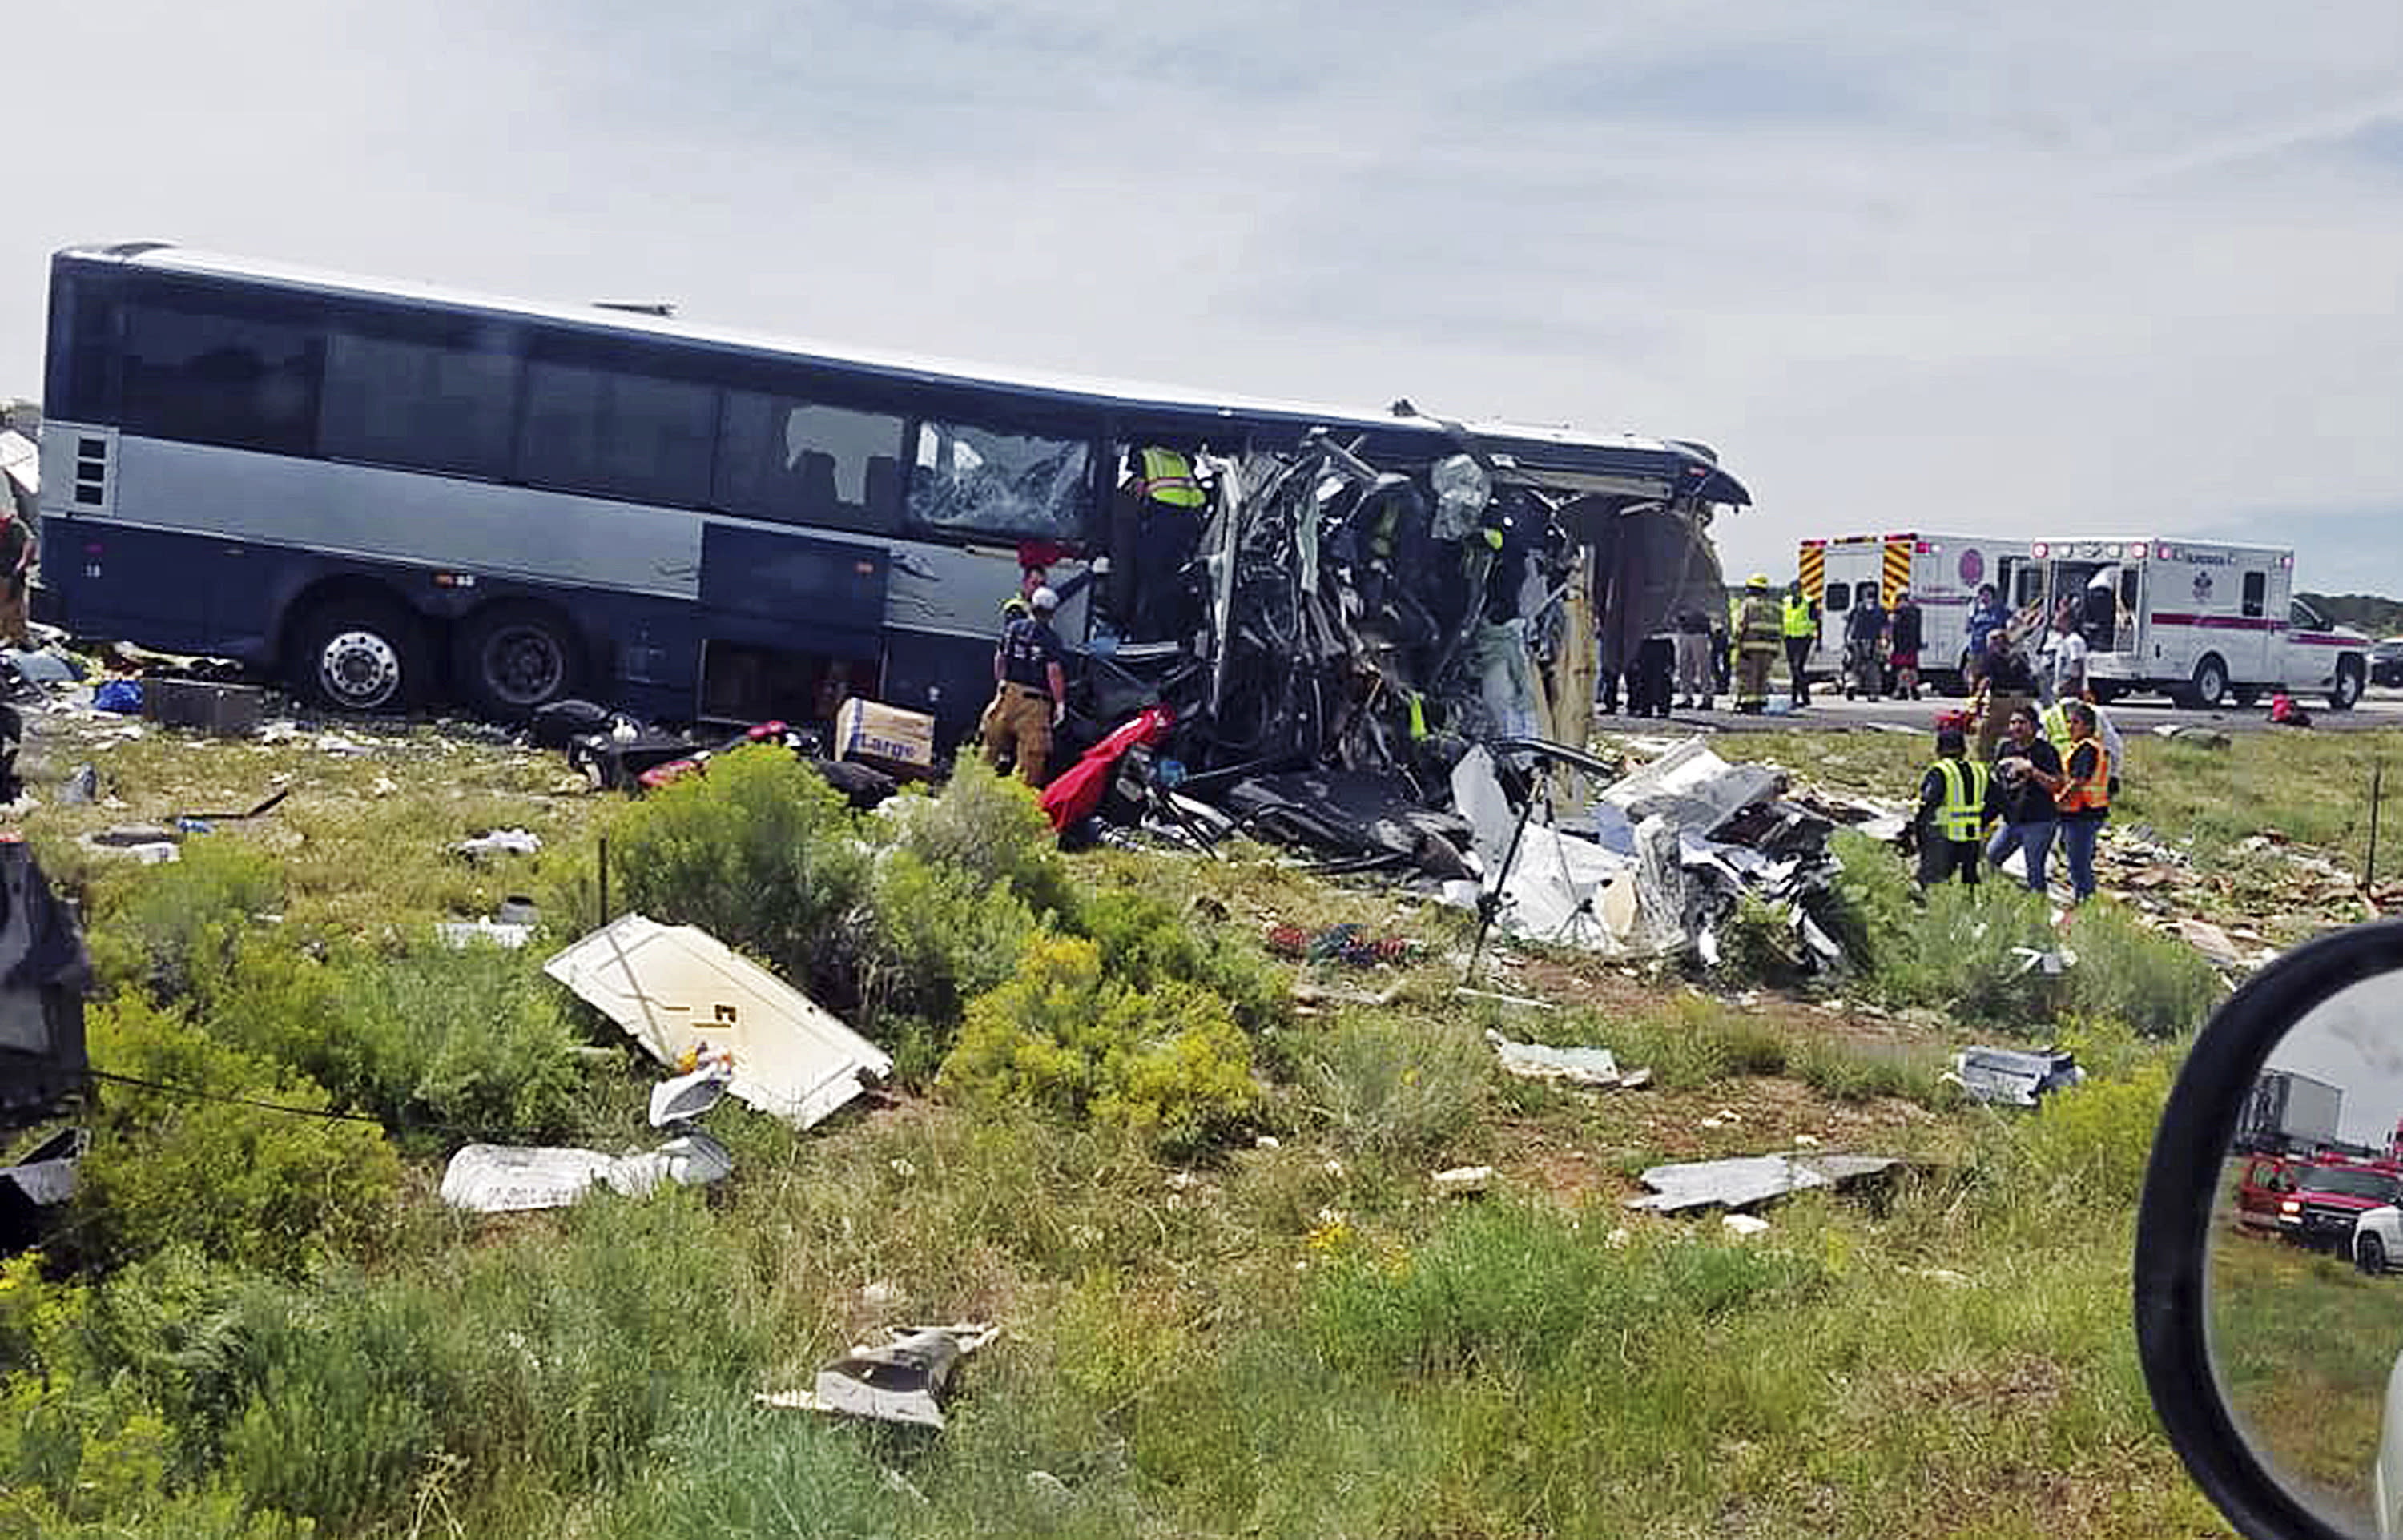 The Latest: Police say 7 killed in New Mexico crash